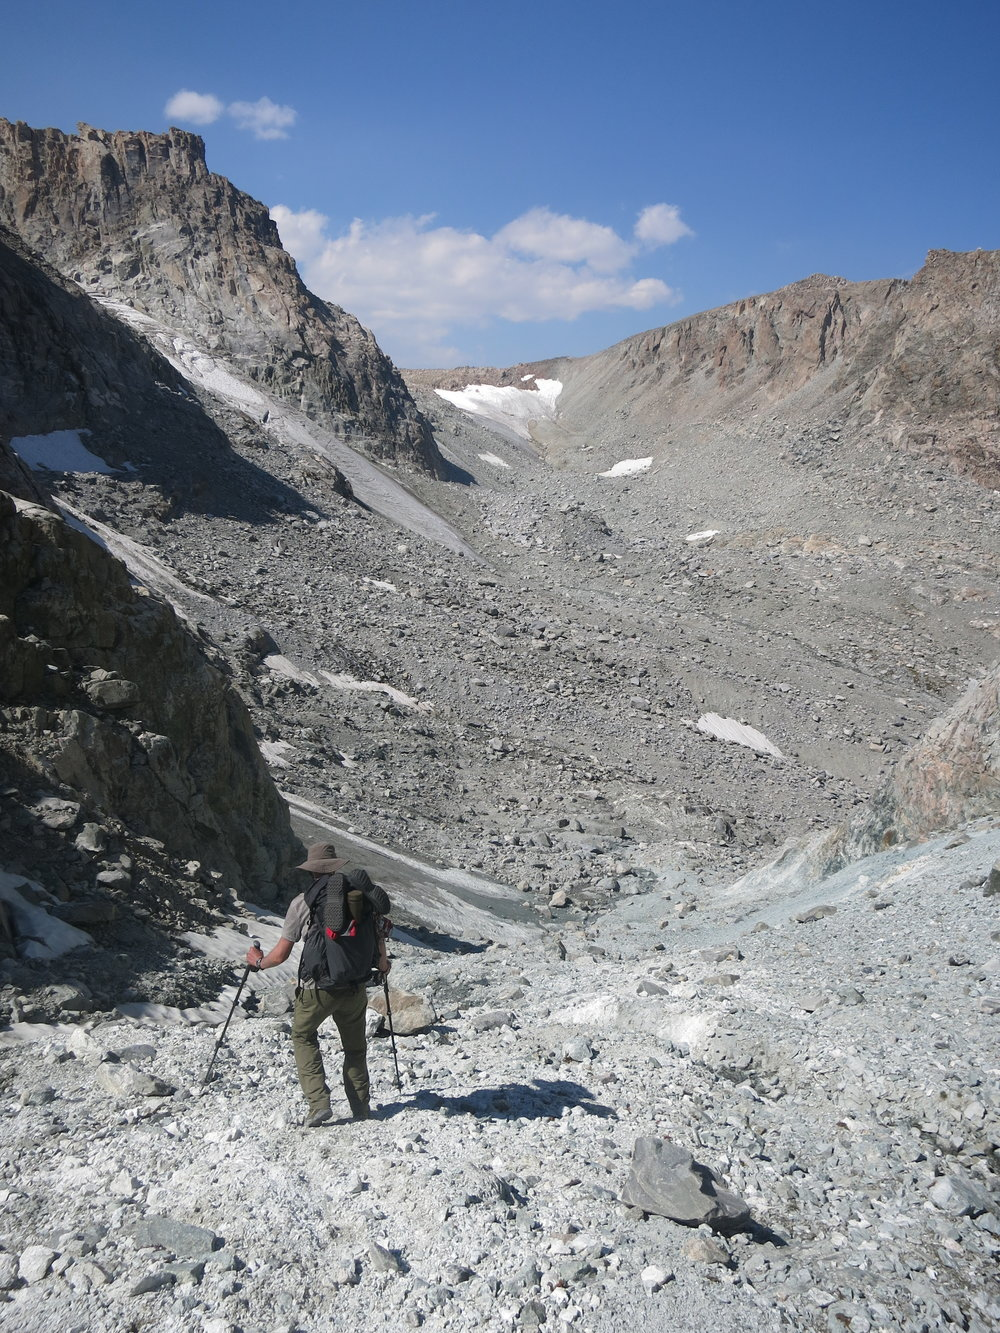 Beginning the steep descent from the gully. Our next objective is that ice patch in the distance below the horizon.